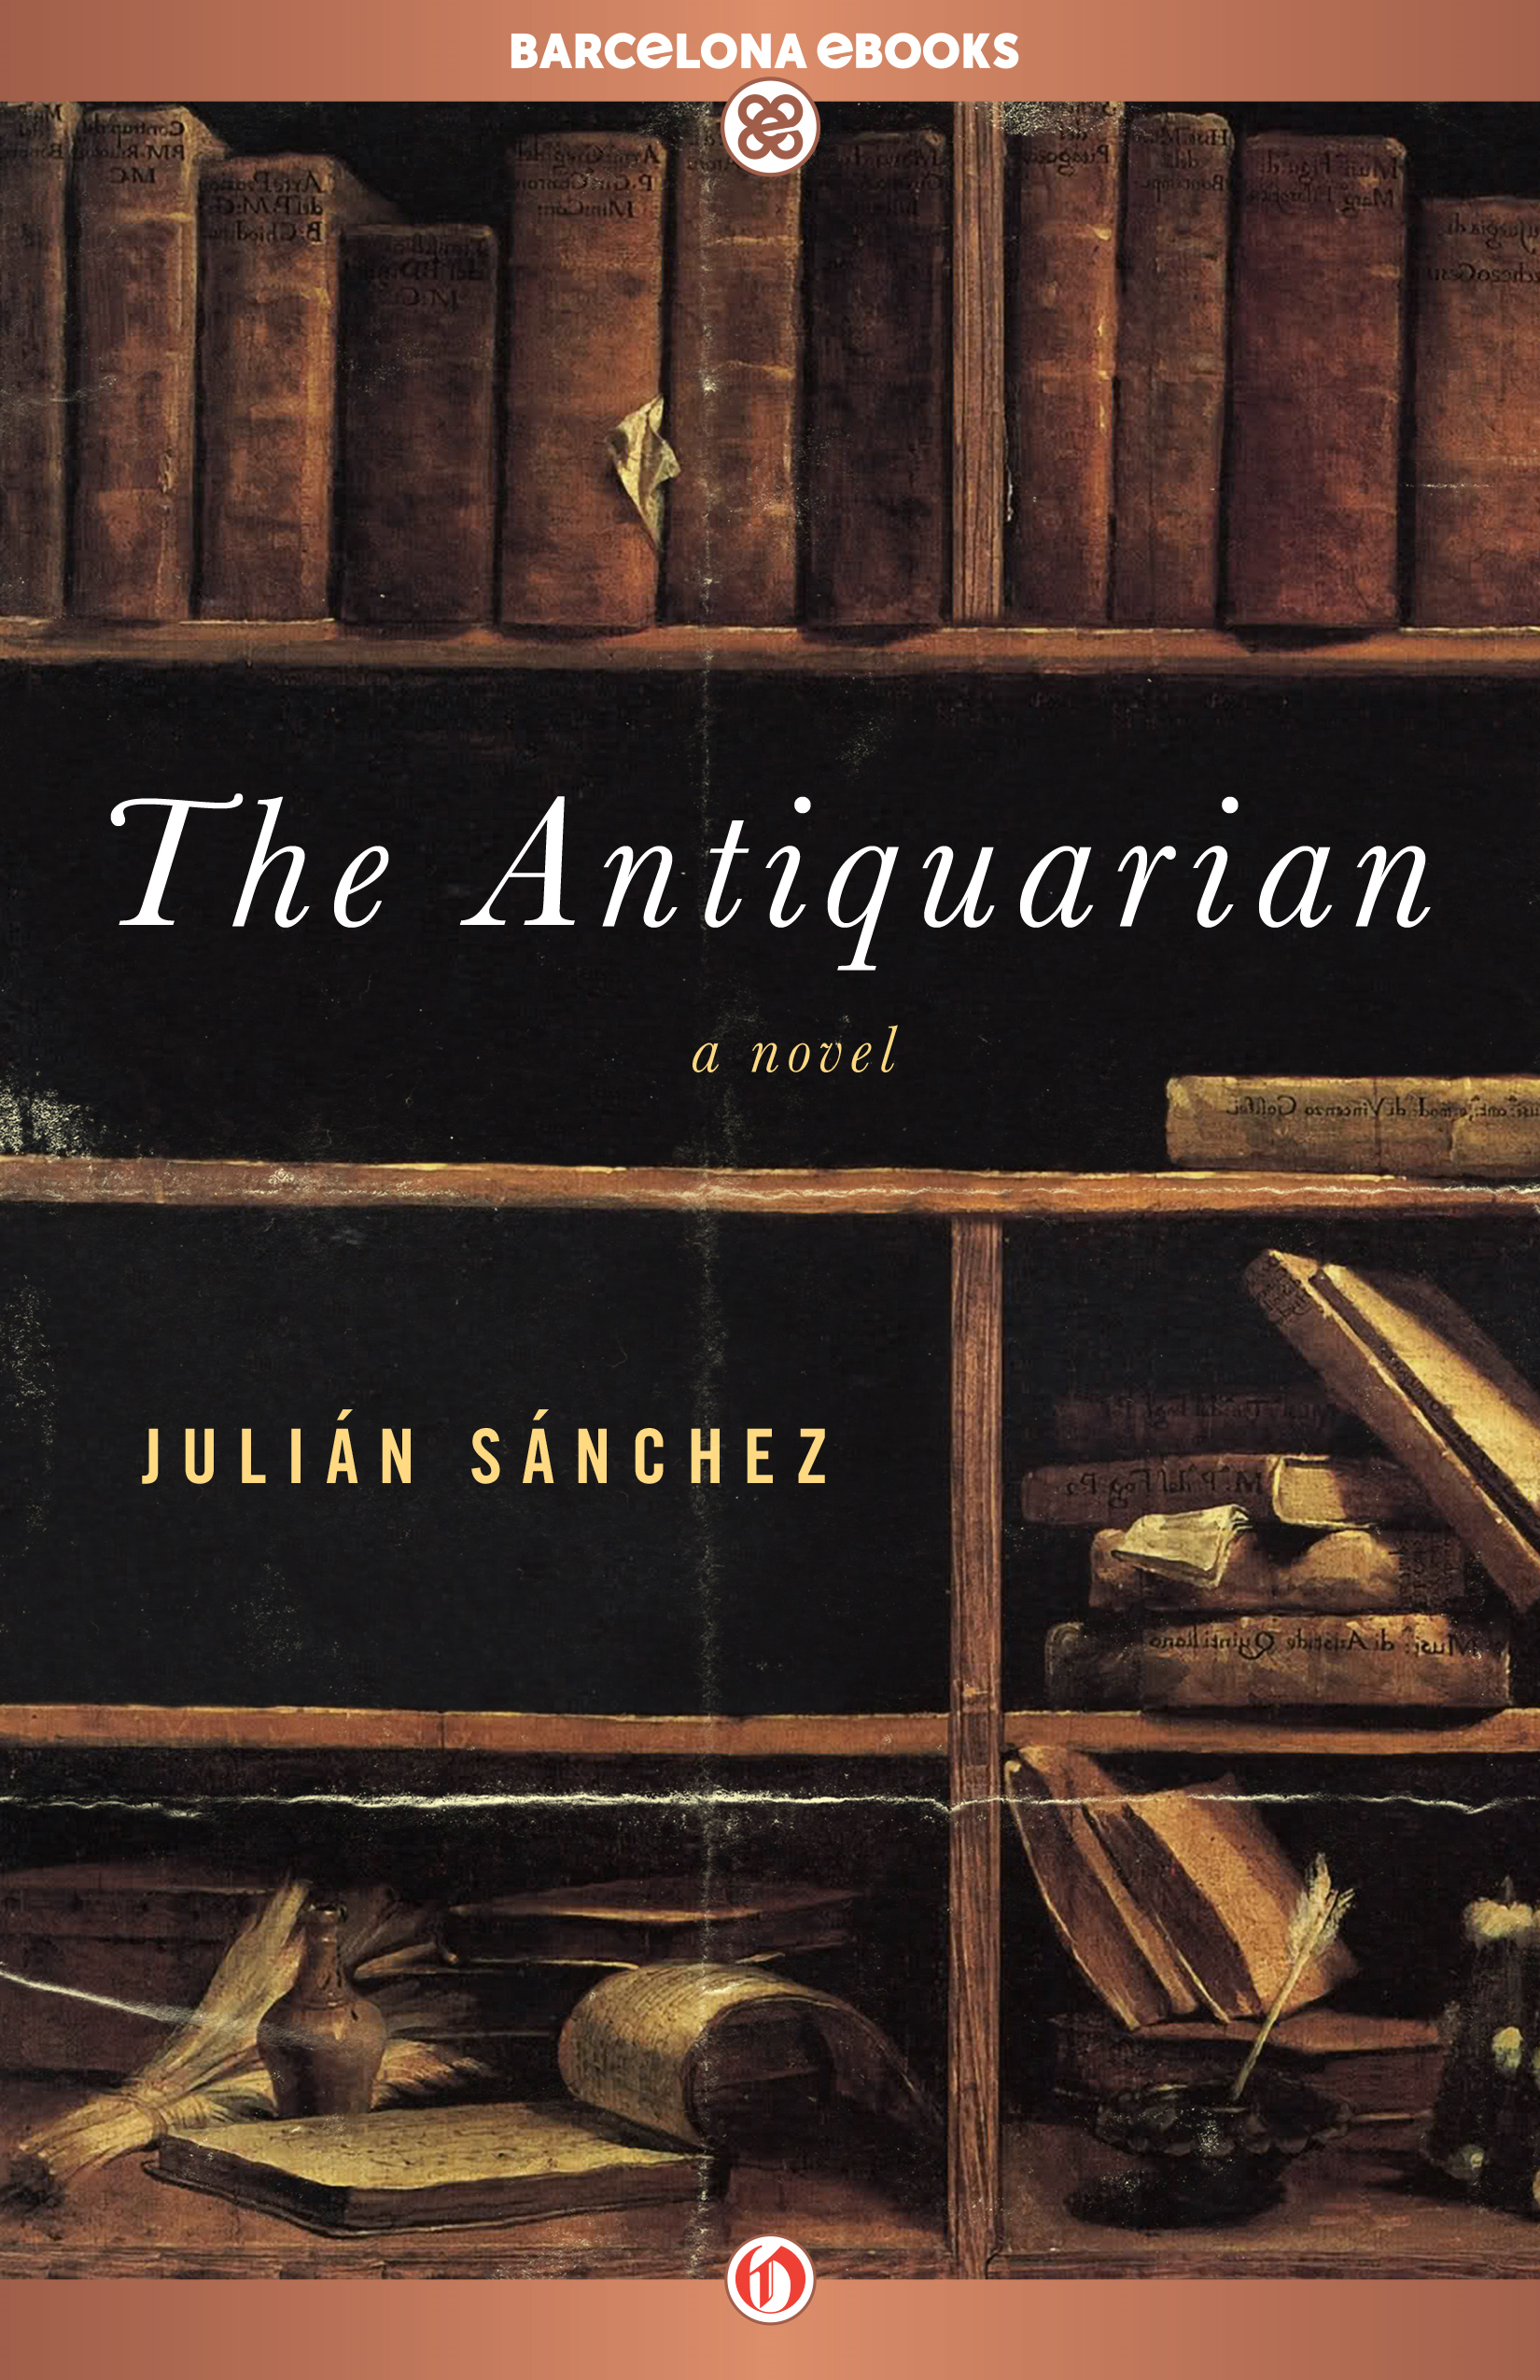 The Antiquarian: A Novel By: Julián Sánchez